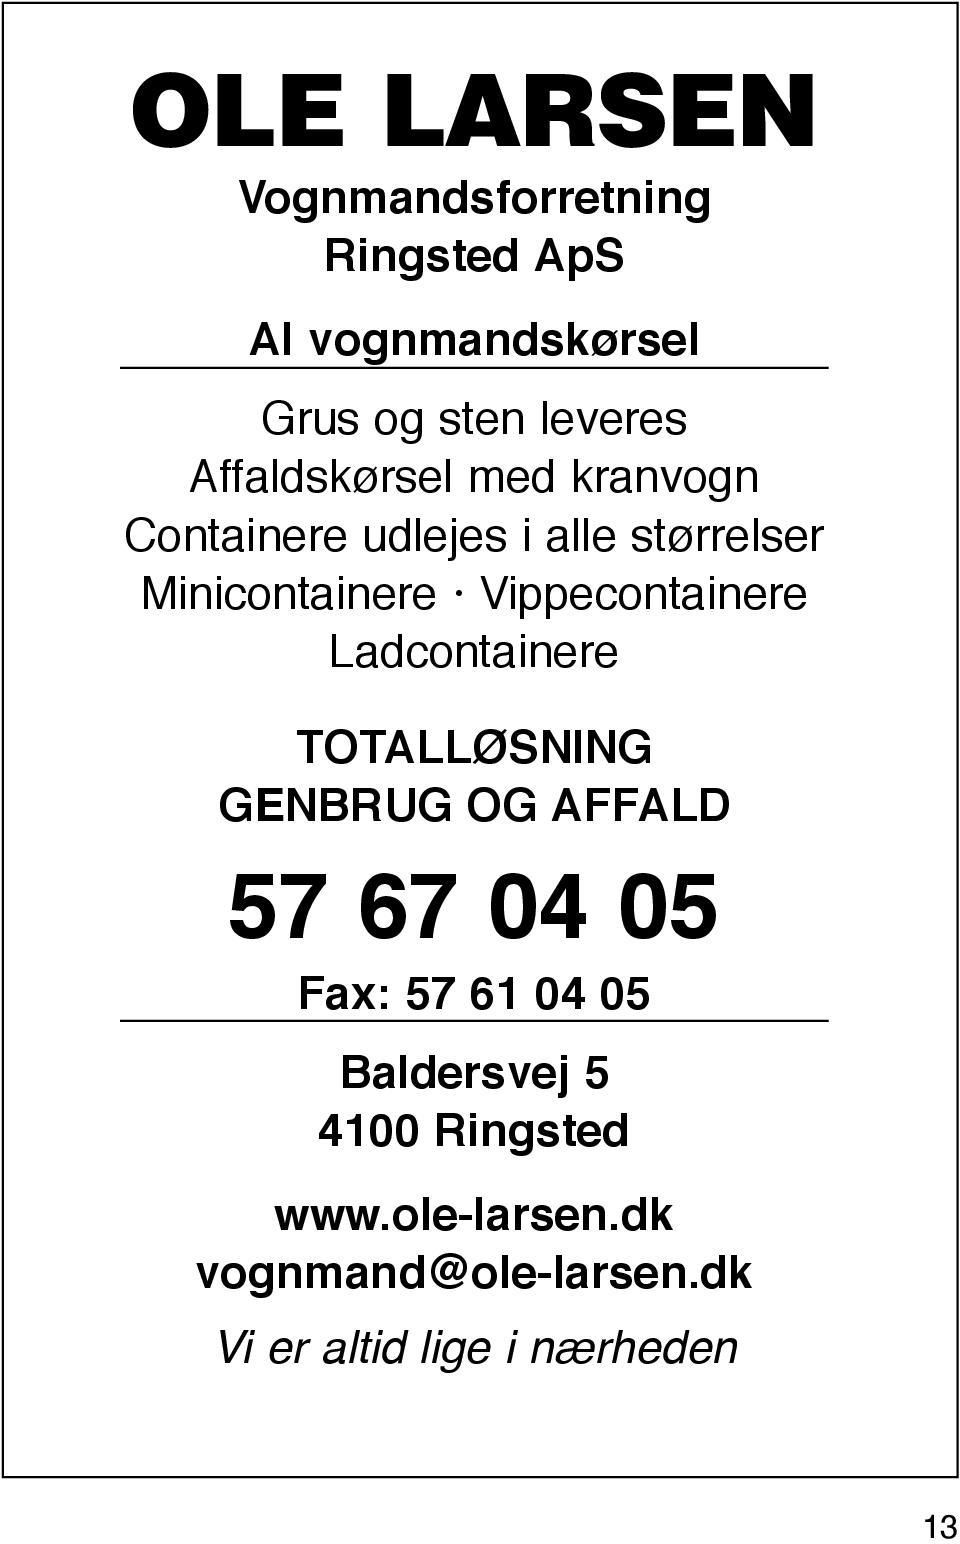 Vippecontainere Ladcontainere Totalløsning Genbrug og affald 57 67 04 05 Fax: 57 61 04